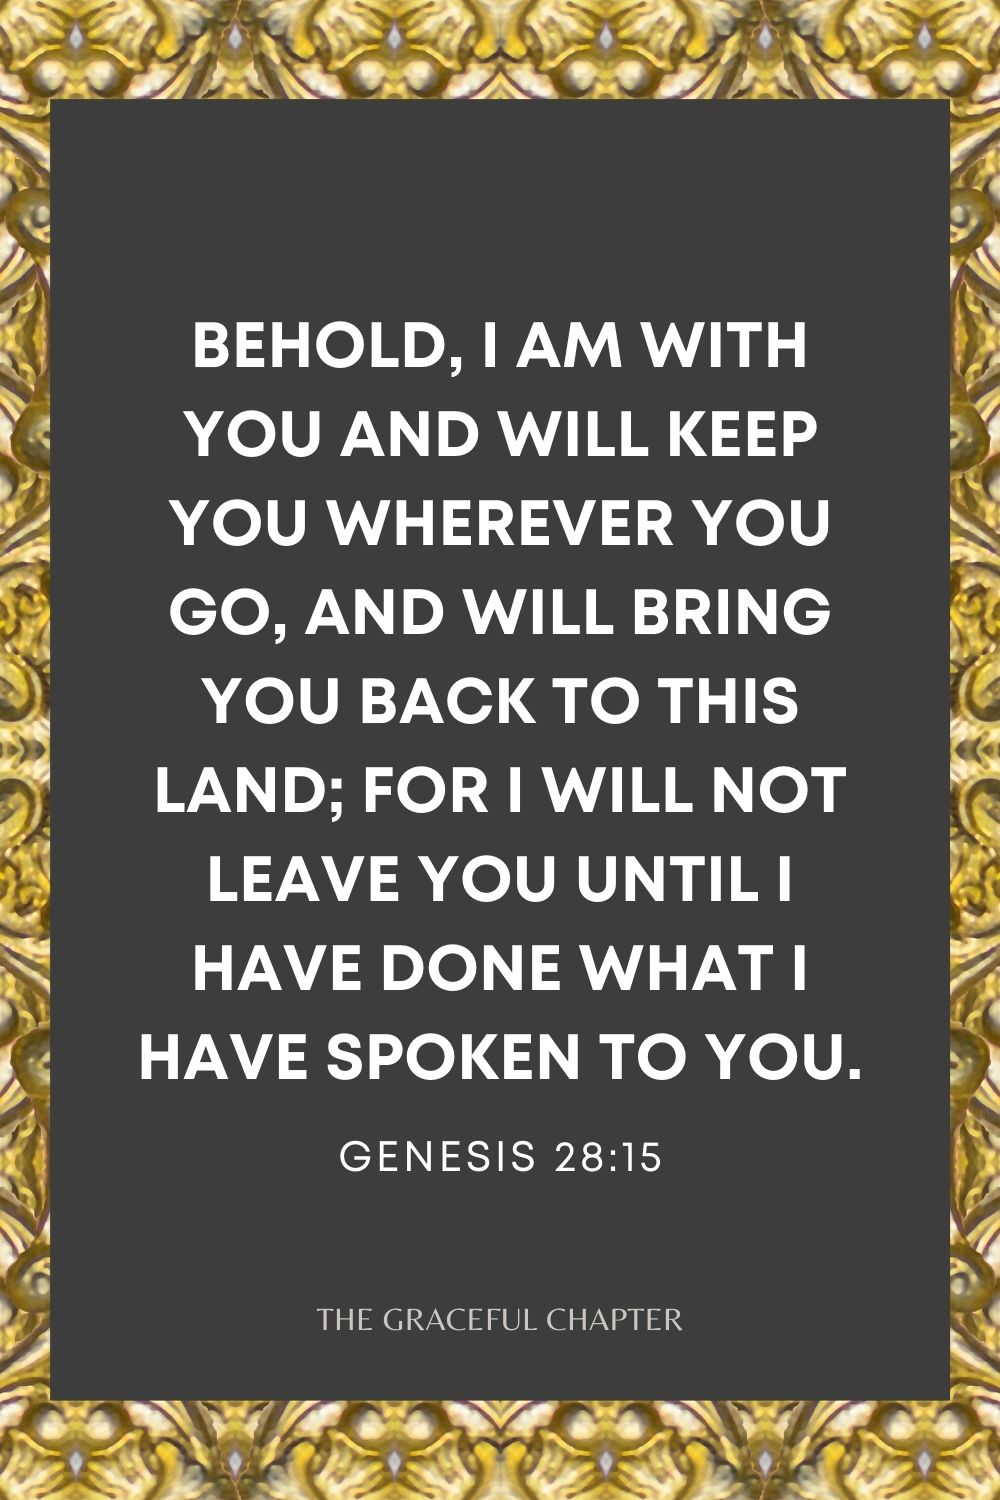 """Behold, I am with you and will keep you wherever you go, and will bring you back to this land; for I will not leave you until I have done what I have spoken to you."""" Genesis 28:15"""